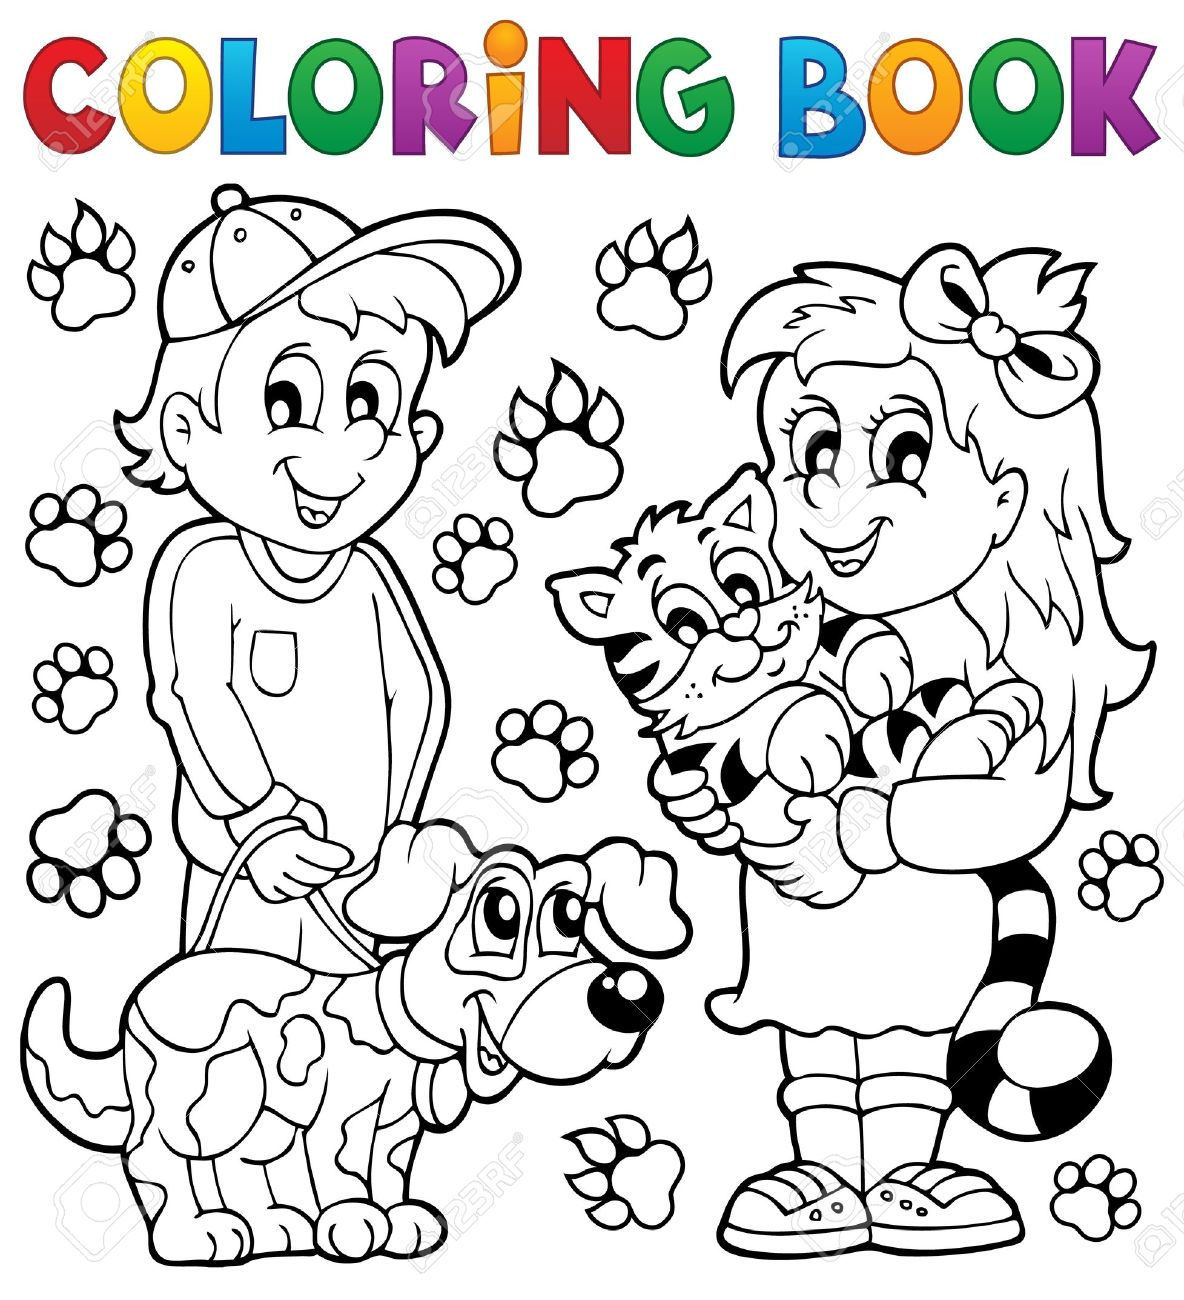 Coloring book children with pets stock vector 35432404